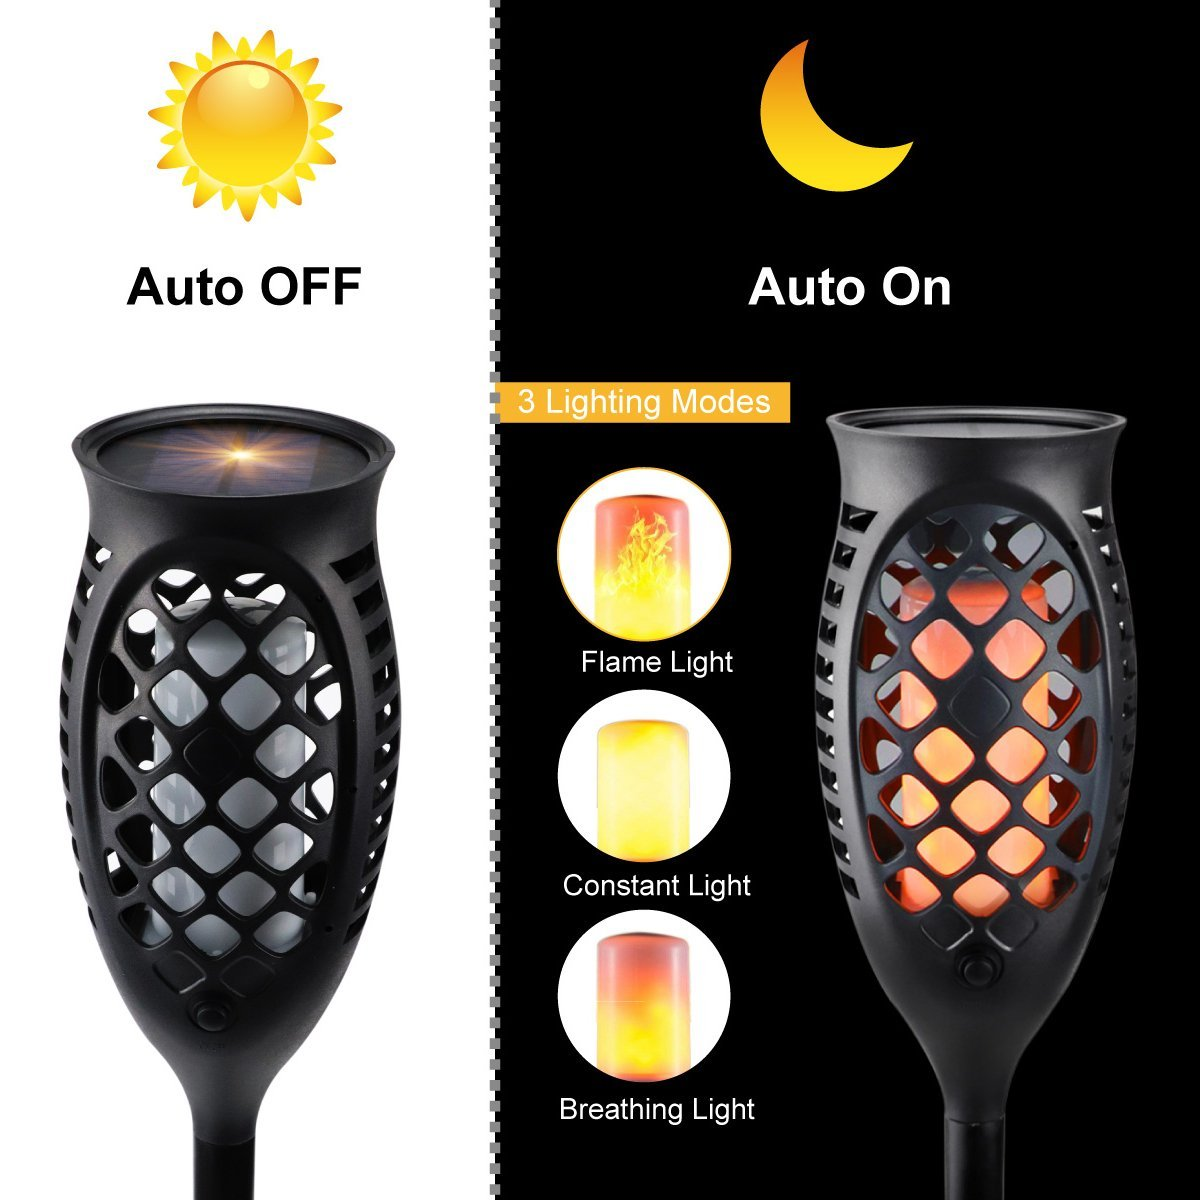 Juhefa Solar Lights Outdoor, Solar Torch Light Flickering Flame 99 LED Waterproof Garden Lighting Pathway Patio Landscape Decoration, 3 Modes & 3 Mounting Options, Dusk to Dawn Auto On/Off (4) by Juhefa (Image #5)